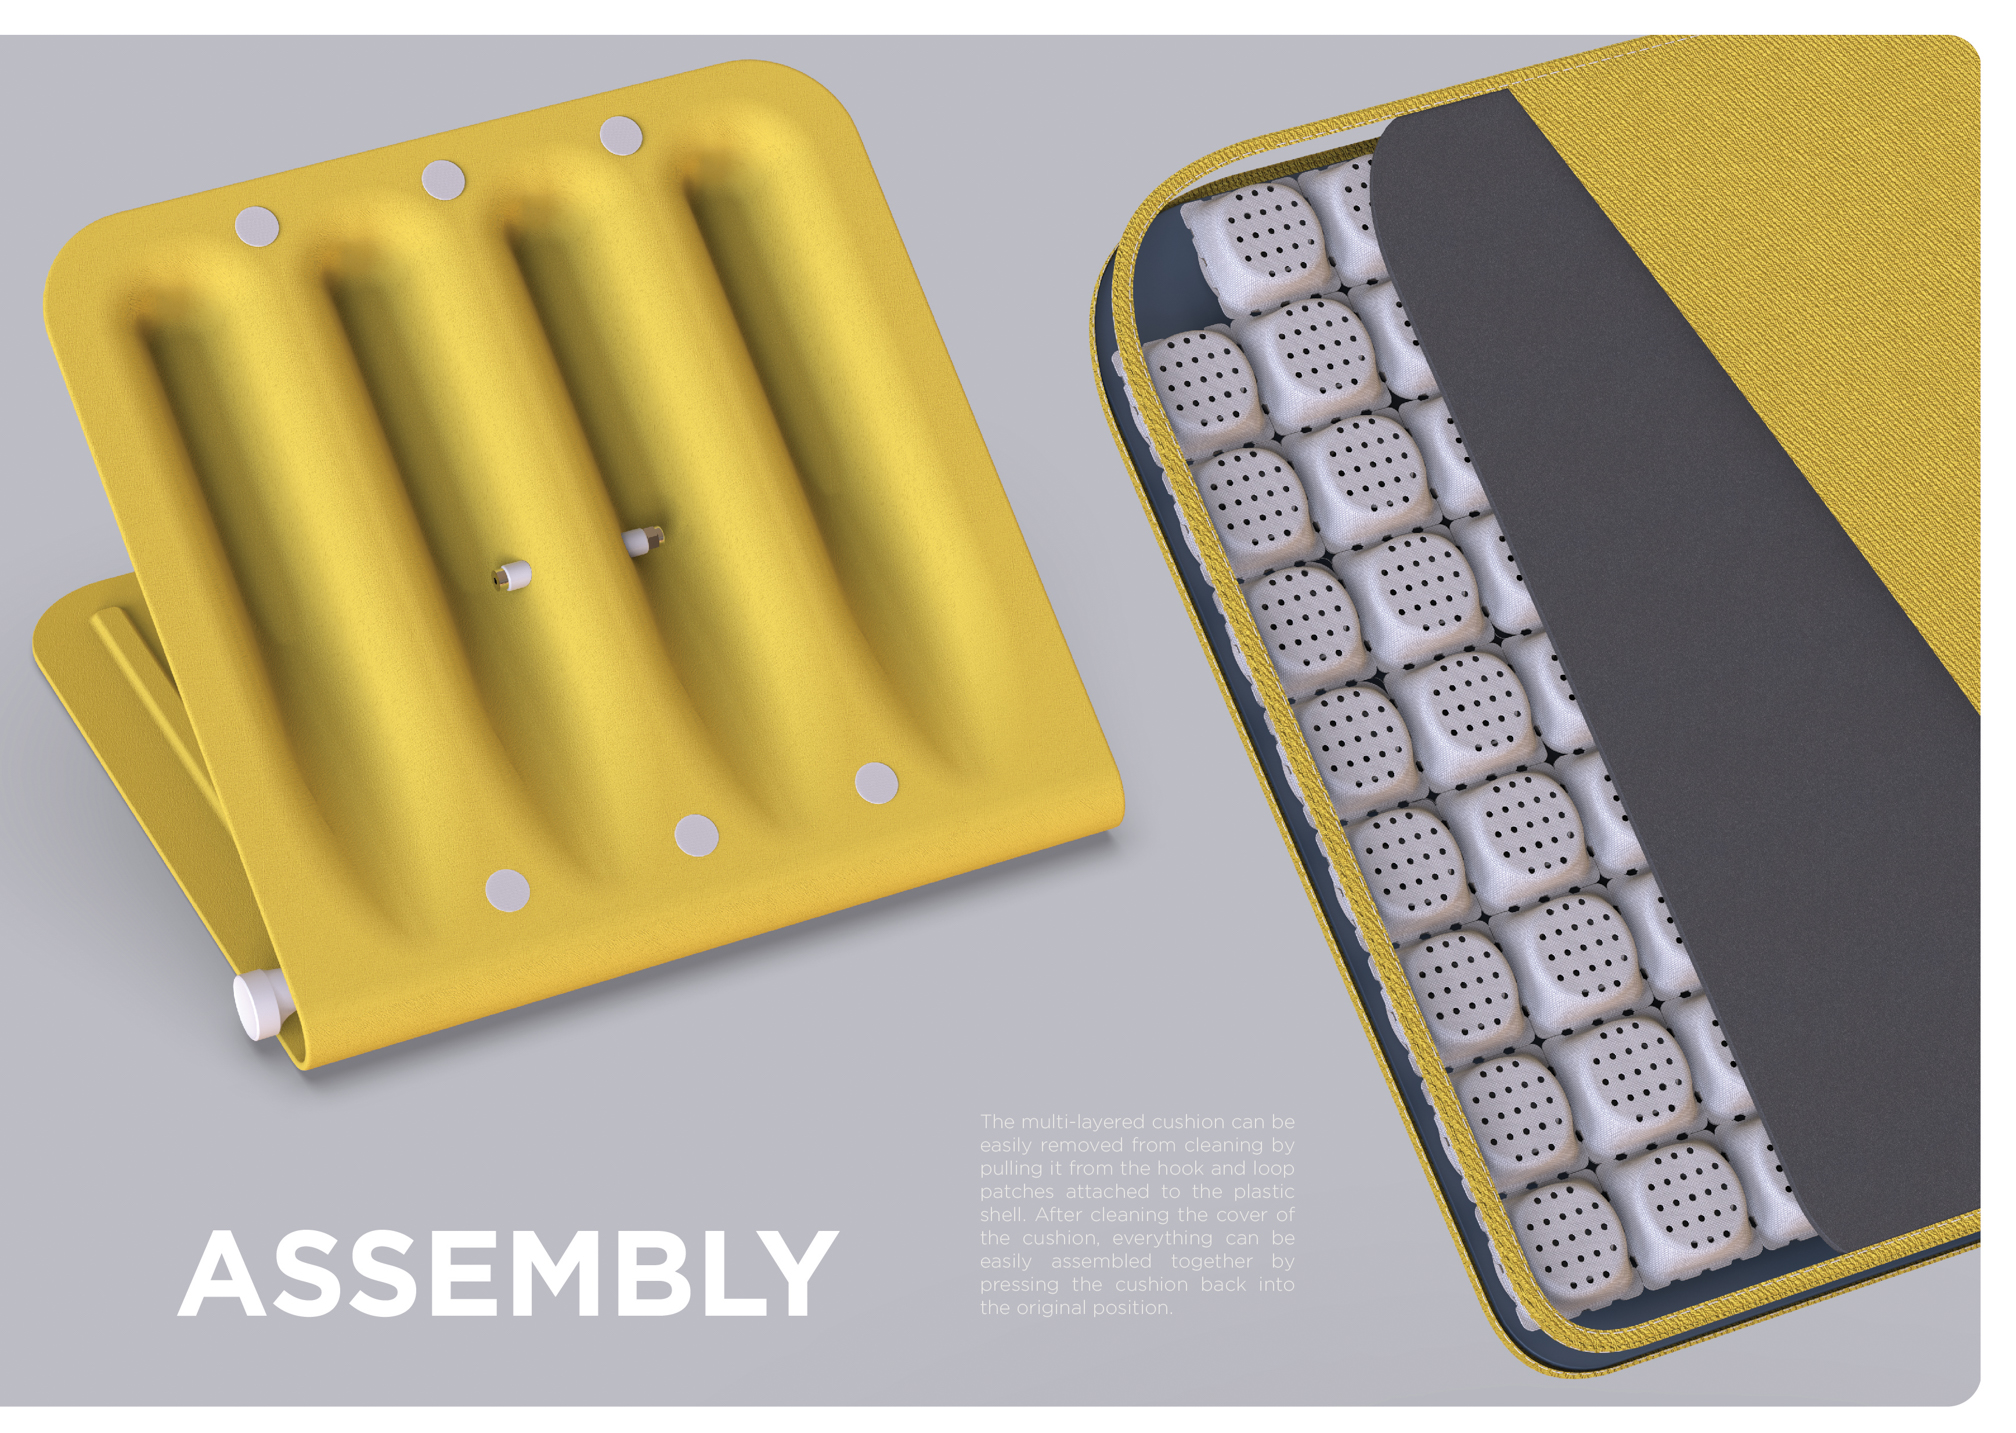 The design of the portable assistive seat